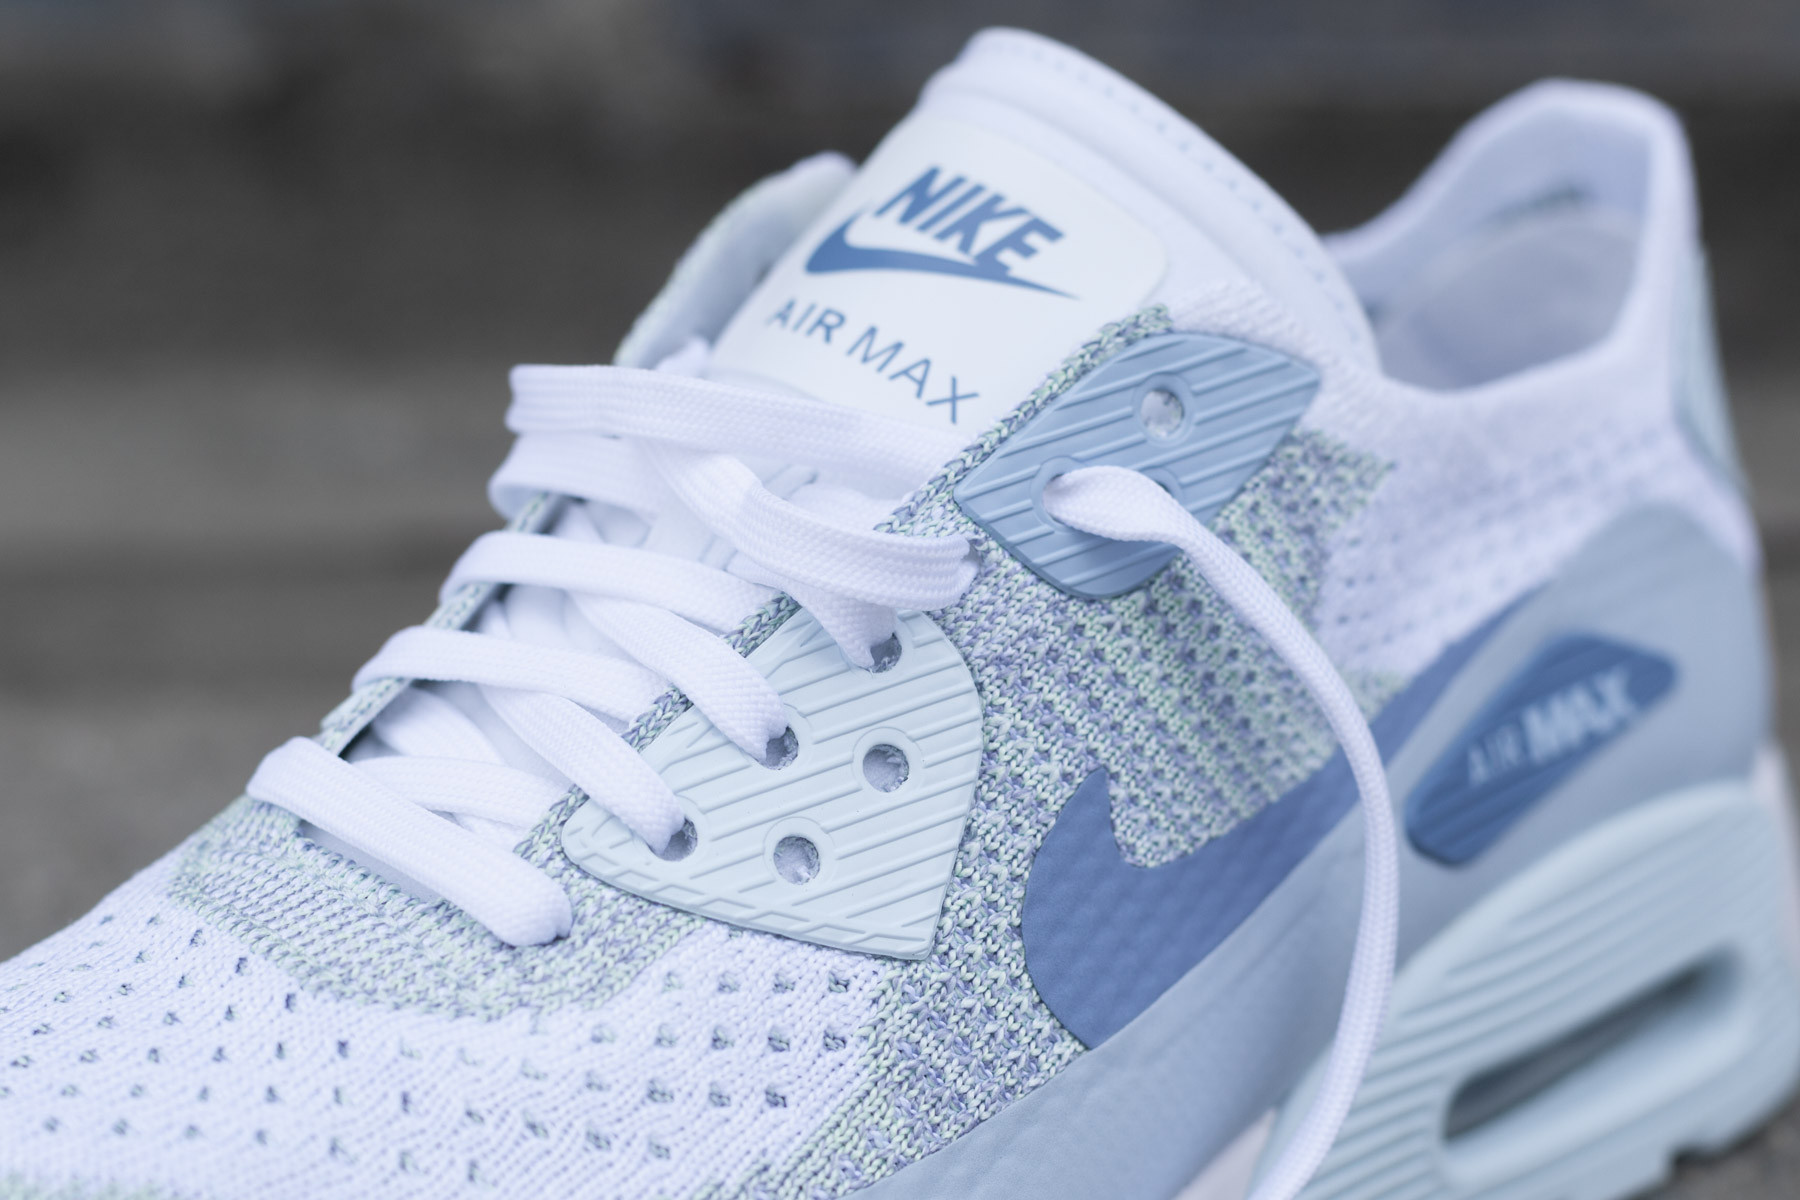 ab3800d15fbaf ... white glacier blue work blue light armory blue trainer uk d0592 d4de6   reduced wmns nike air max 90 ultra 2.0 flyknit sneakers sneaker.no fdf3d  a6c69